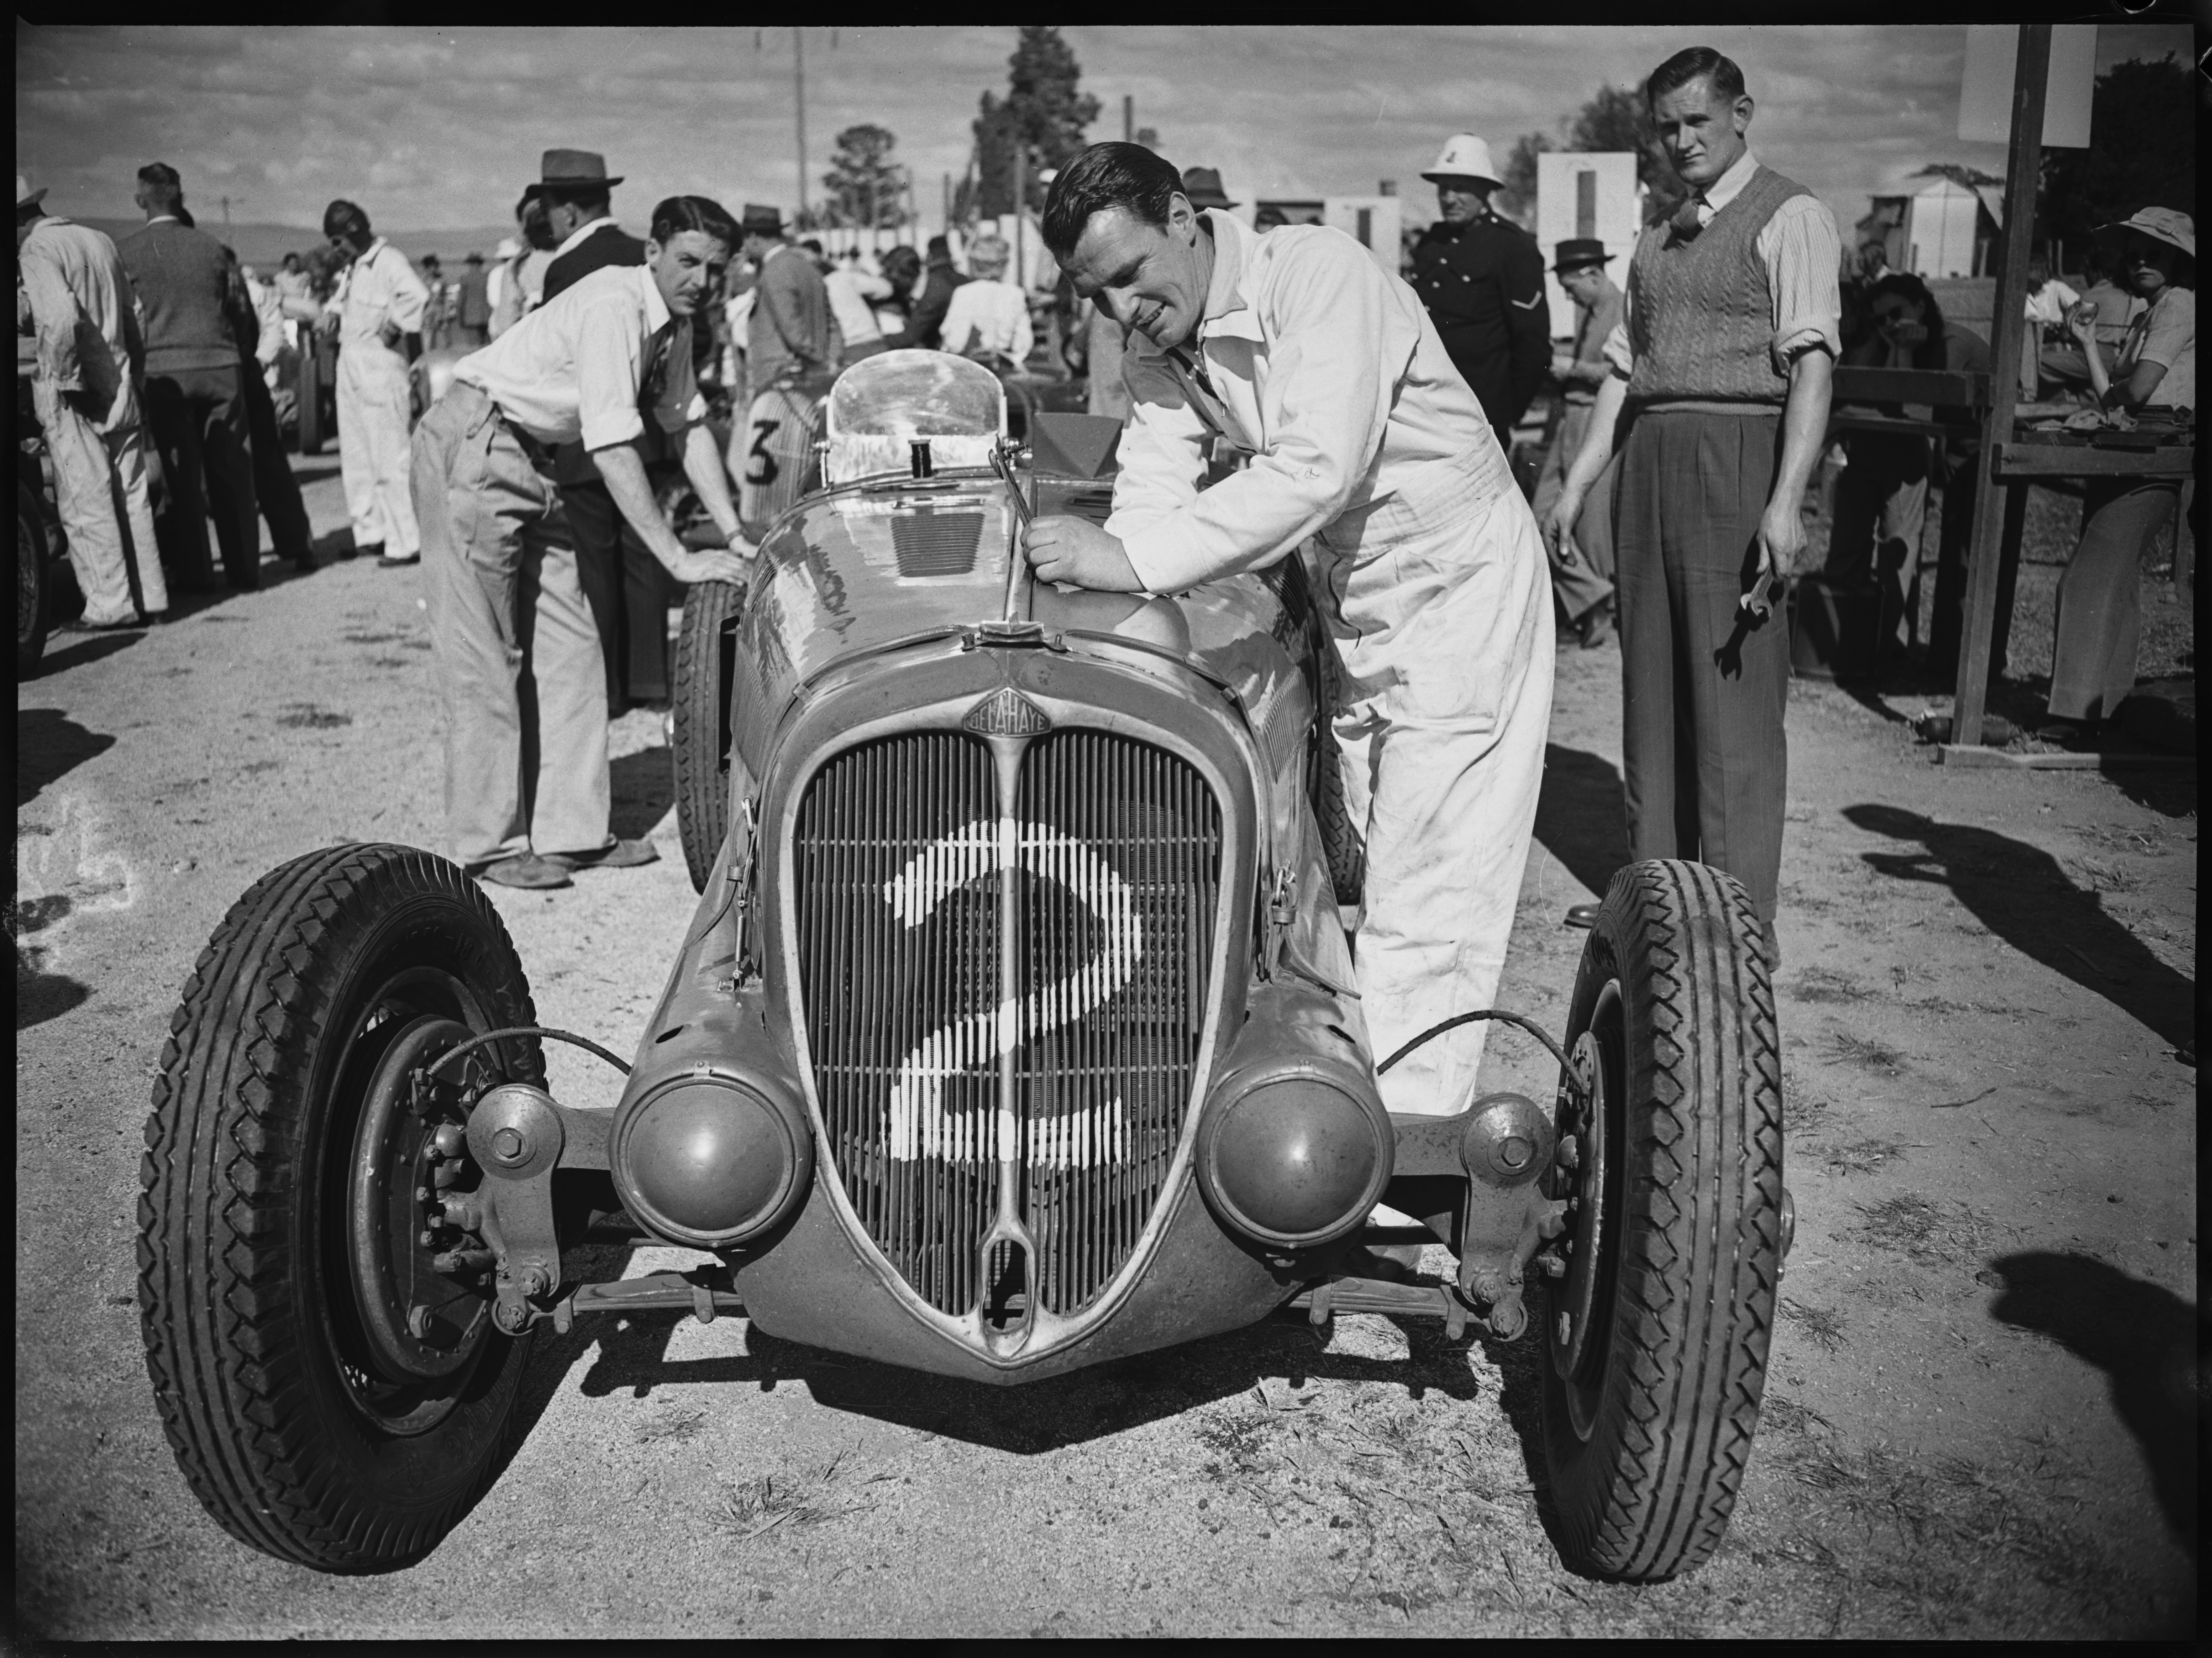 No. 2. John Crouch with his Delahaye 135 racing car, Grand Prix, Bathurst, October 1946,